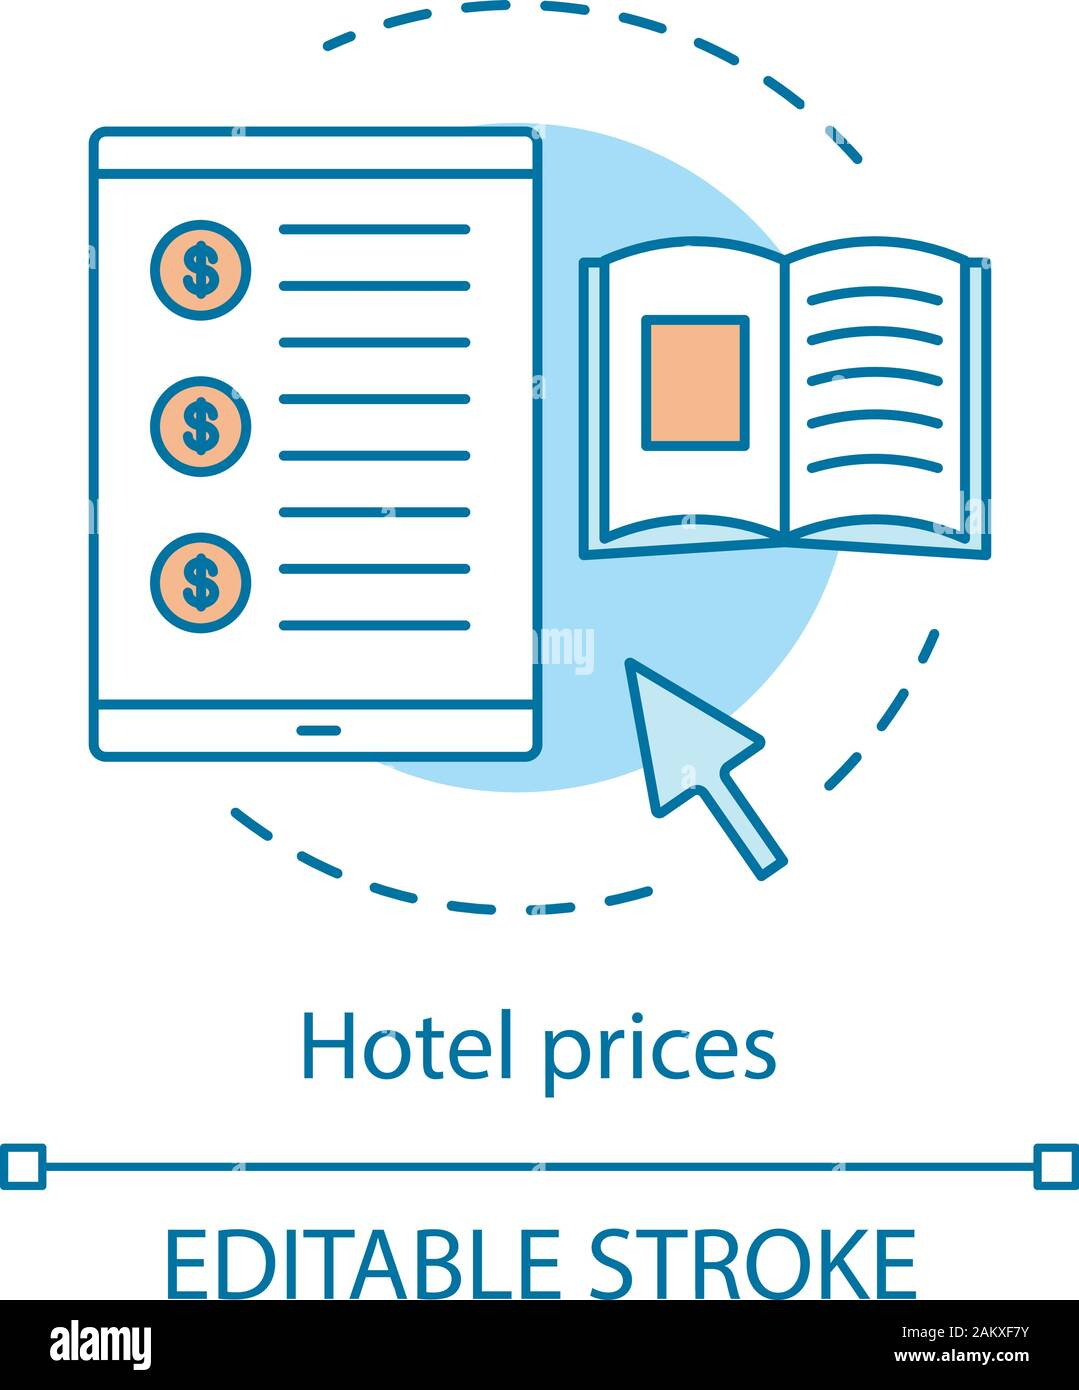 Hotel Prices Concept Icon Room Cost Checking Website Services Invoice Online Booking Reservation App Price Comparison Tracking Idea Thin Line Il Stock Vector Image Art Alamy